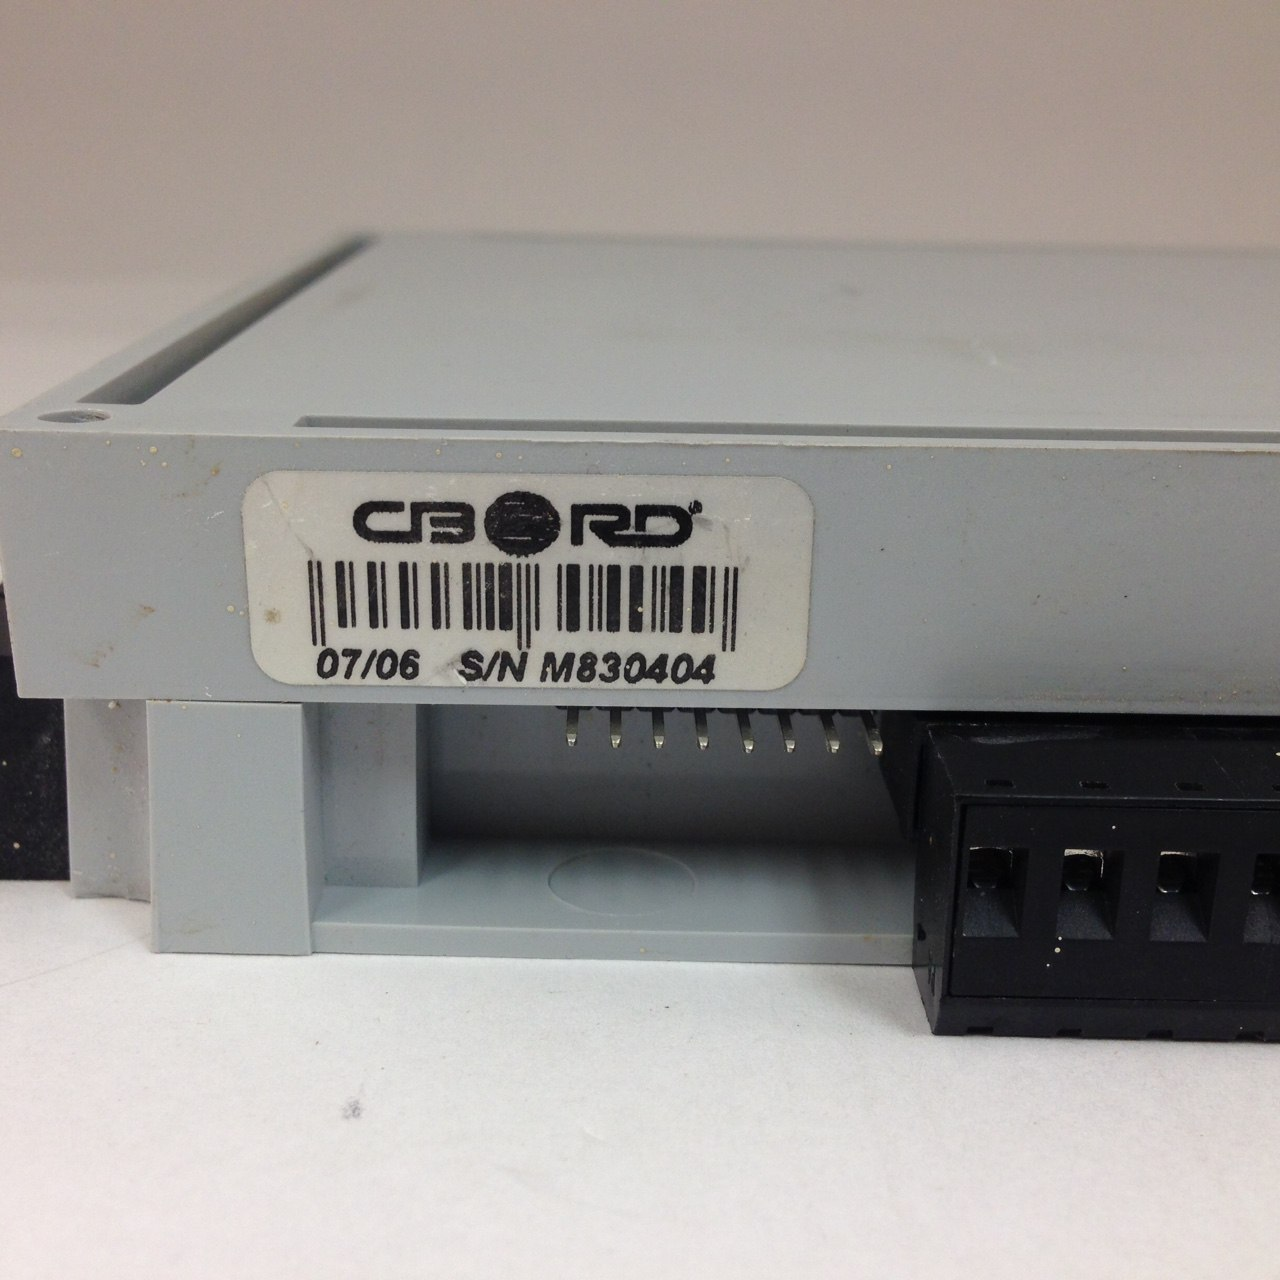 V1000 31 hid vertx v1000 network controller, cbord sandlapper controls hid v1000 wiring diagram at reclaimingppi.co